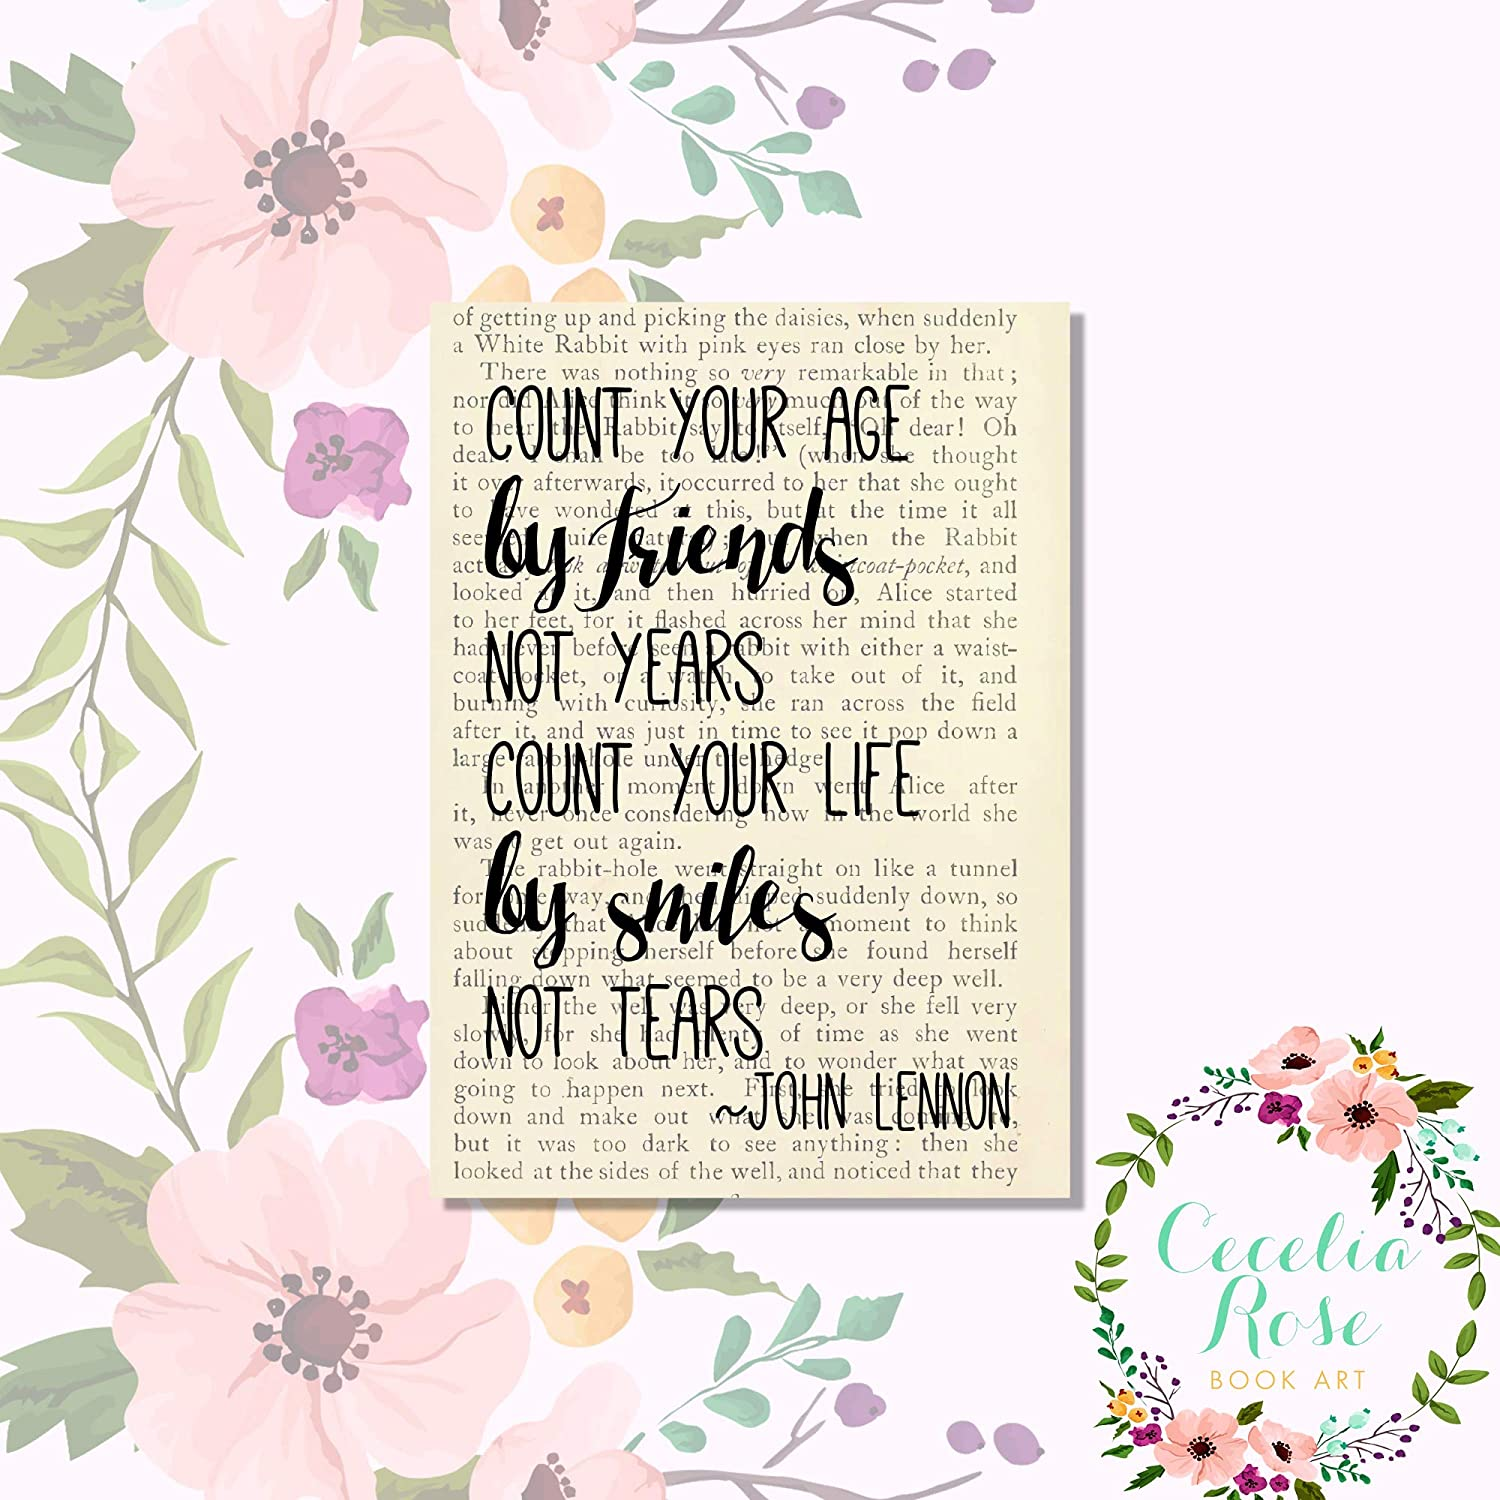 Cecelia Rose Book Art 5x7 PrintCount Your Age By Friends Not Years Count Your Life By Smiles Not Tears John Lennon//The Beatles